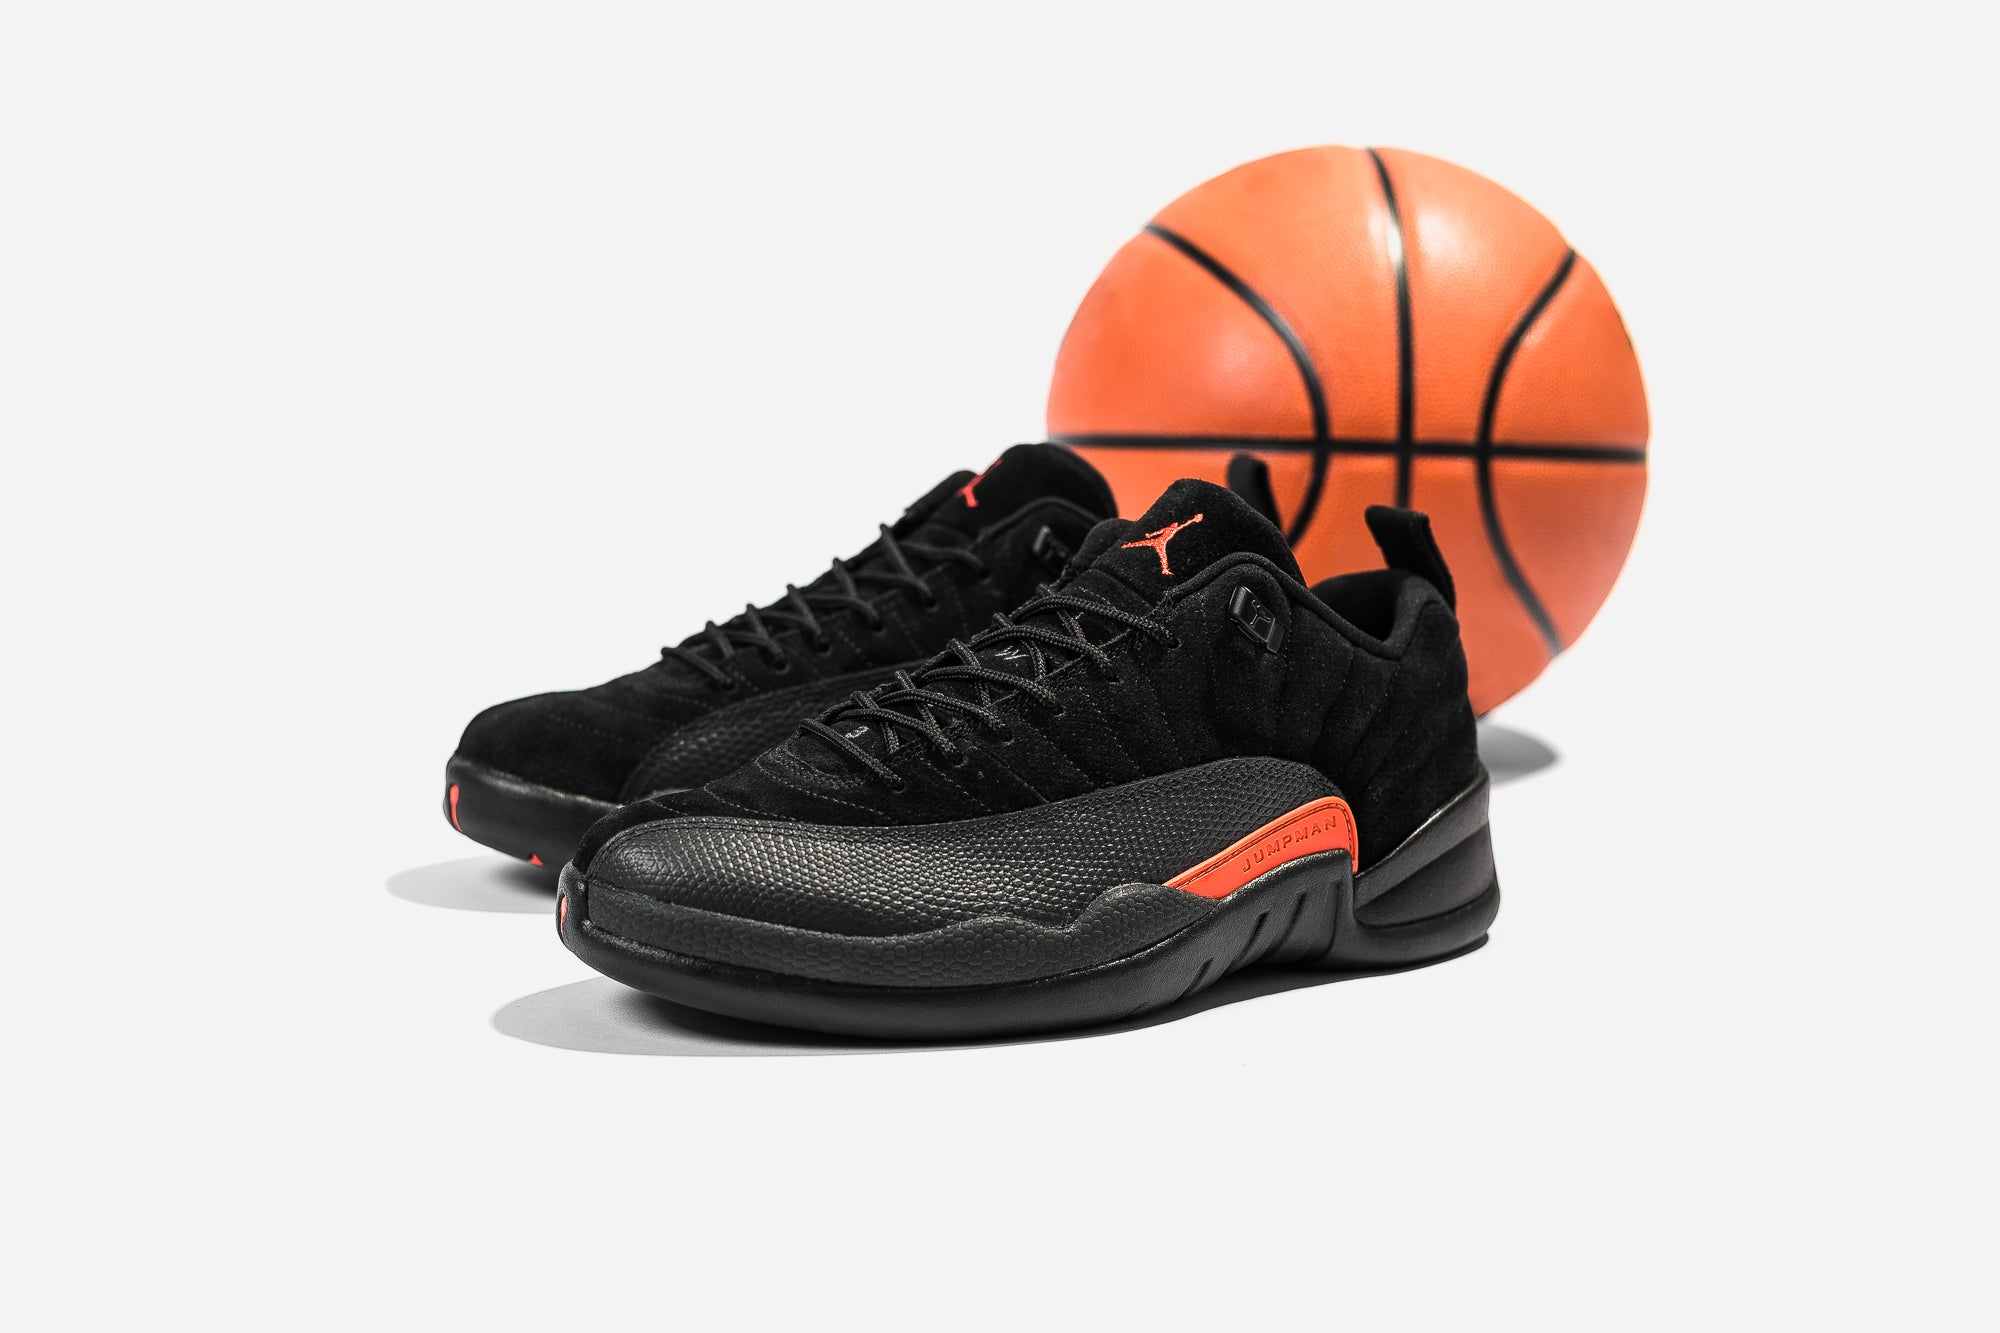 size 40 ff2e0 ebf25 ... ireland the air jordan 12 retro low arrives dressed in black athracite  and max orange in